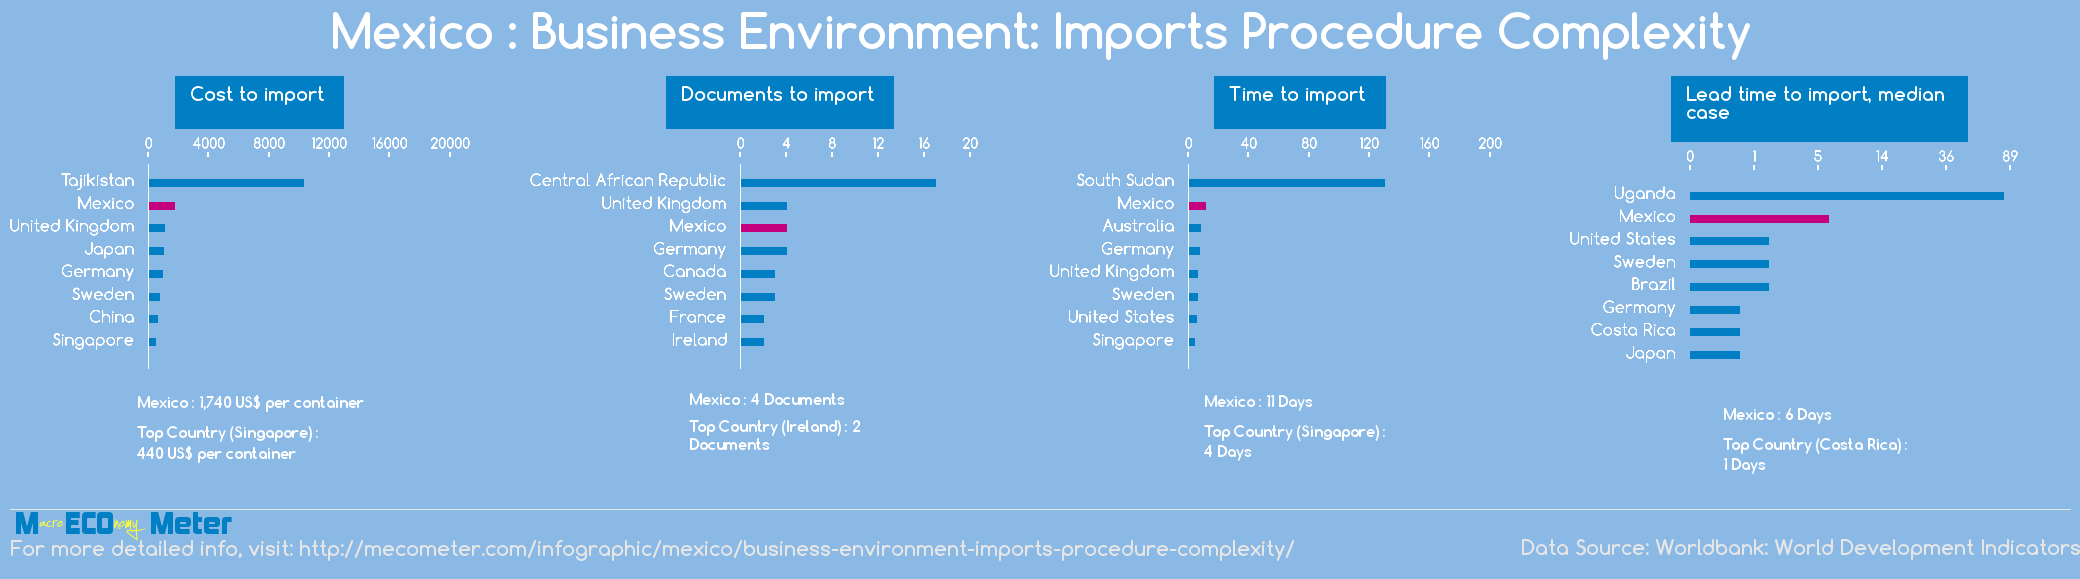 Mexico : Business Environment: Imports Procedure Complexity